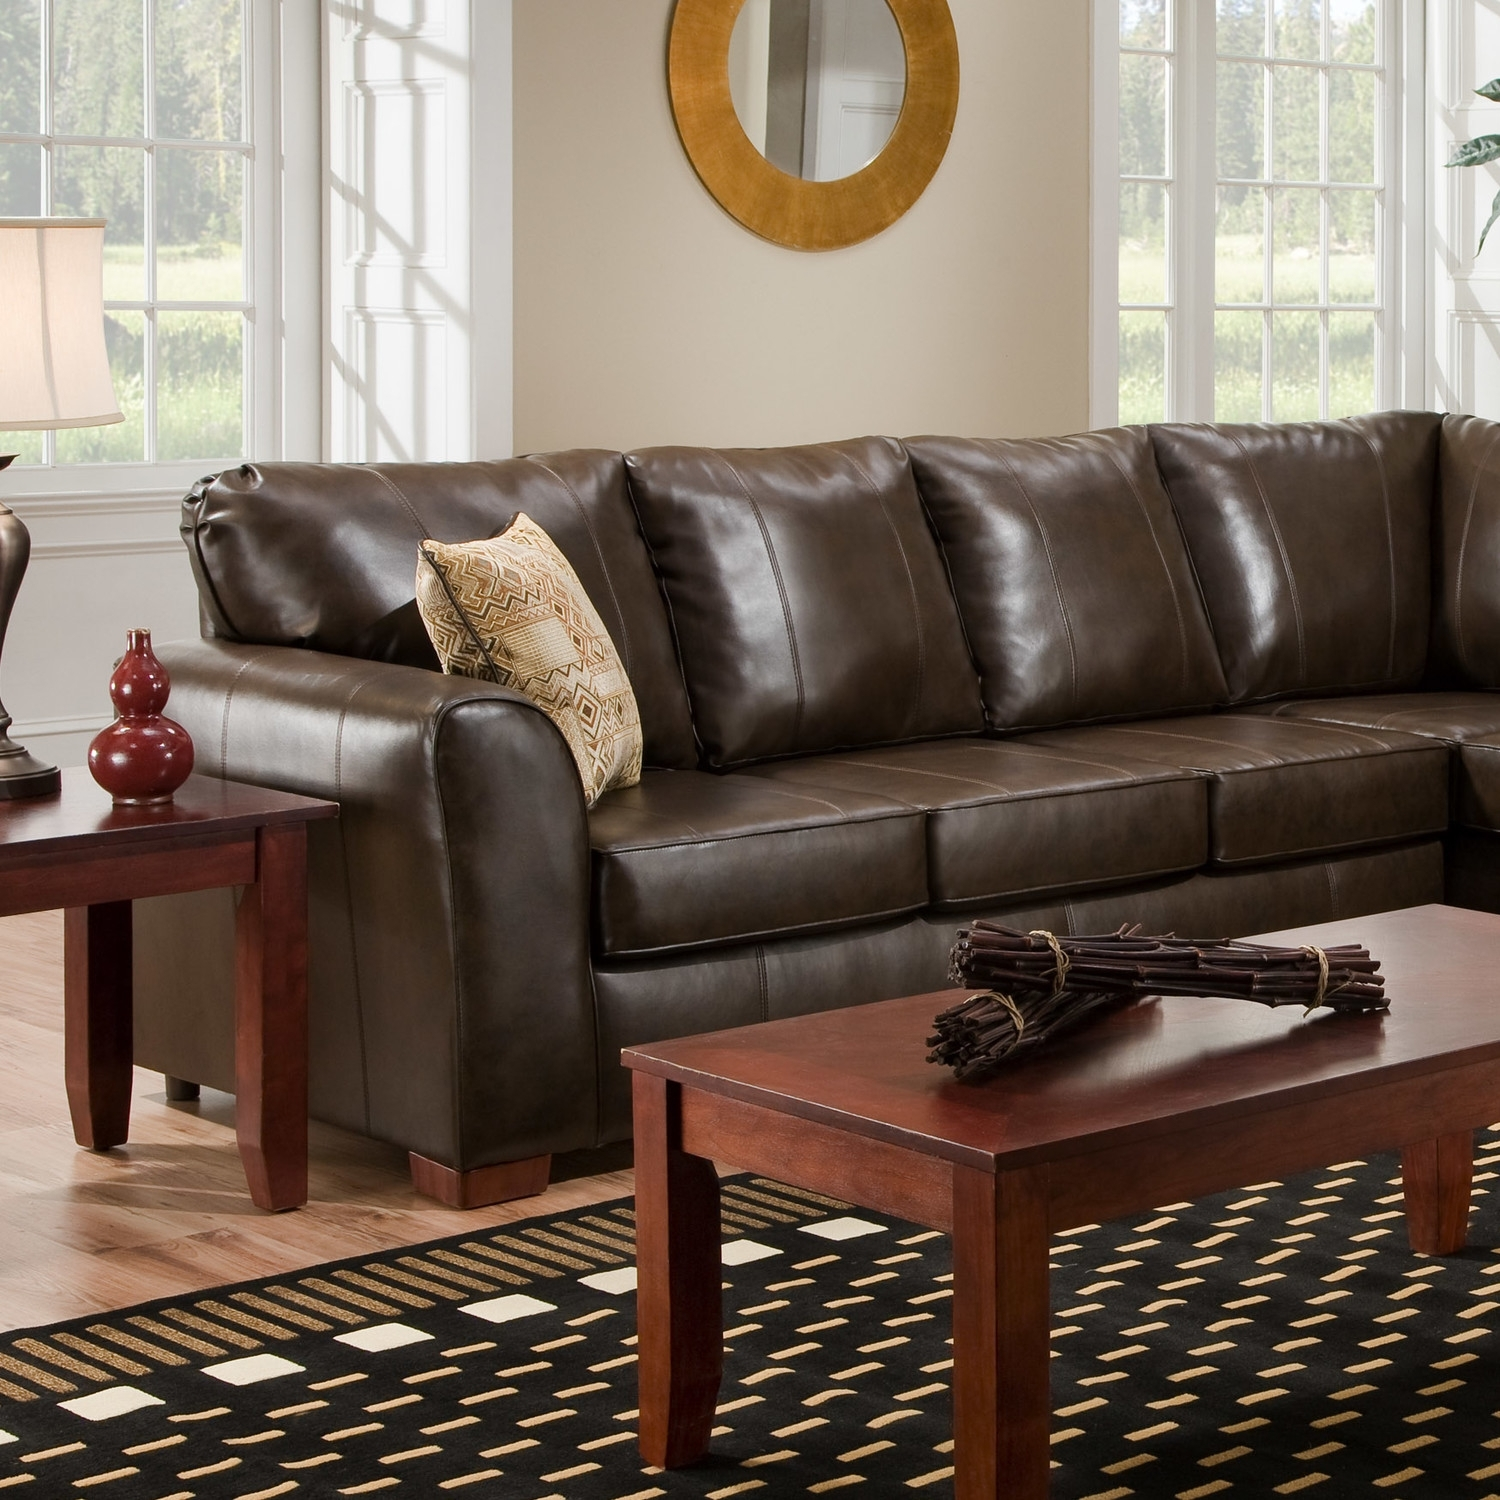 10 Best Houzz Sectional Sofas